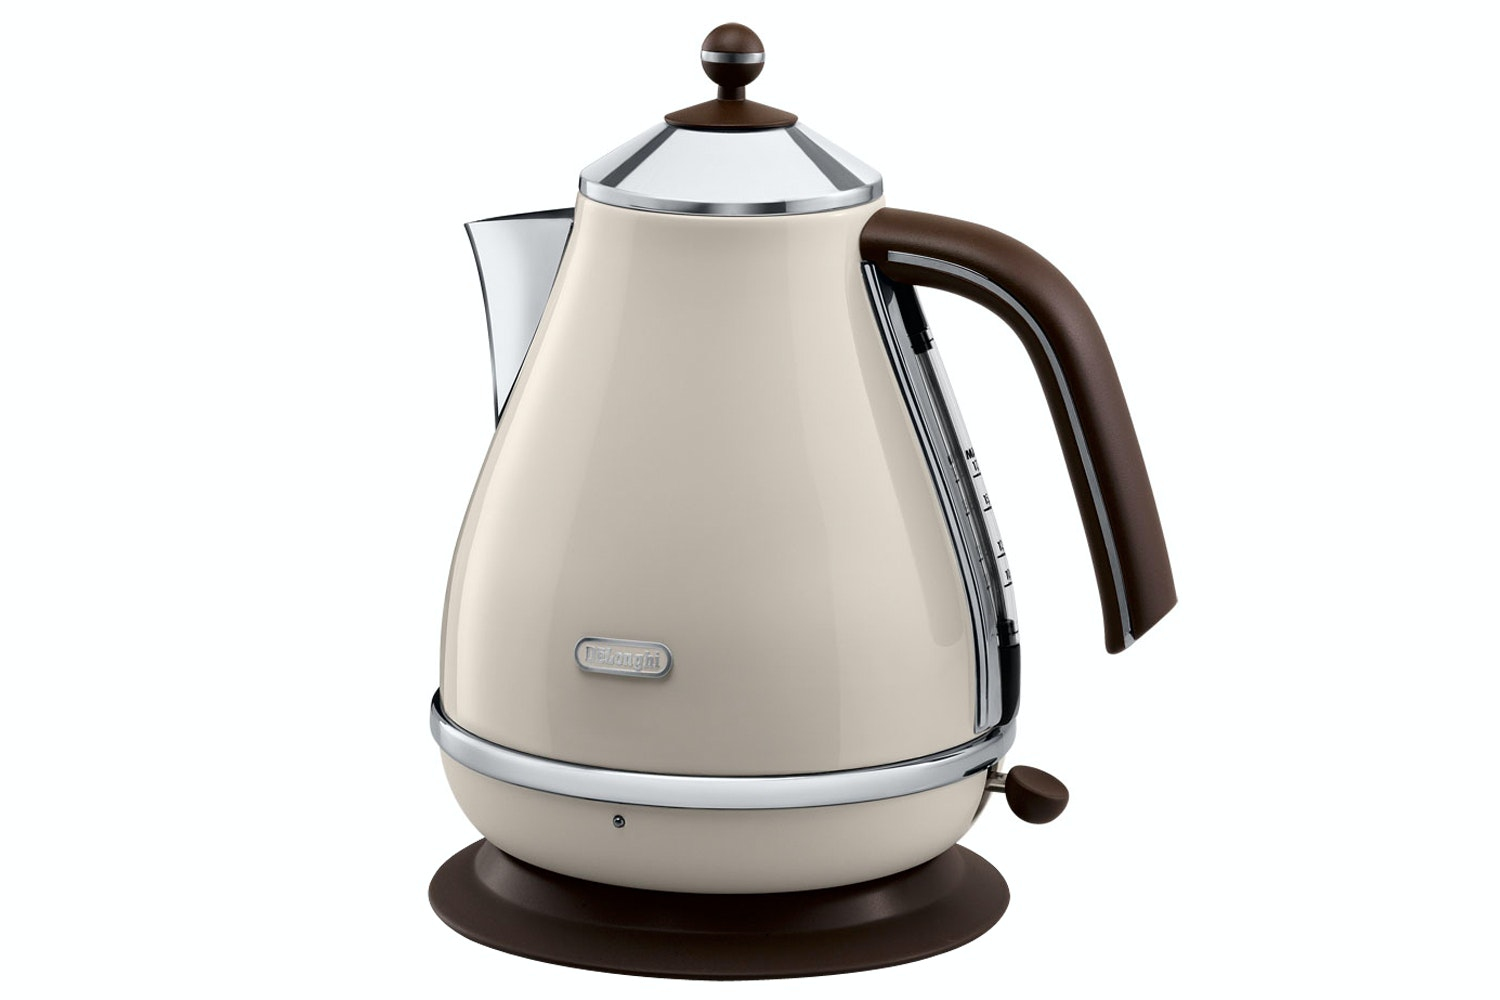 DeLonghi 1.7L Vintage Kettle | Cream